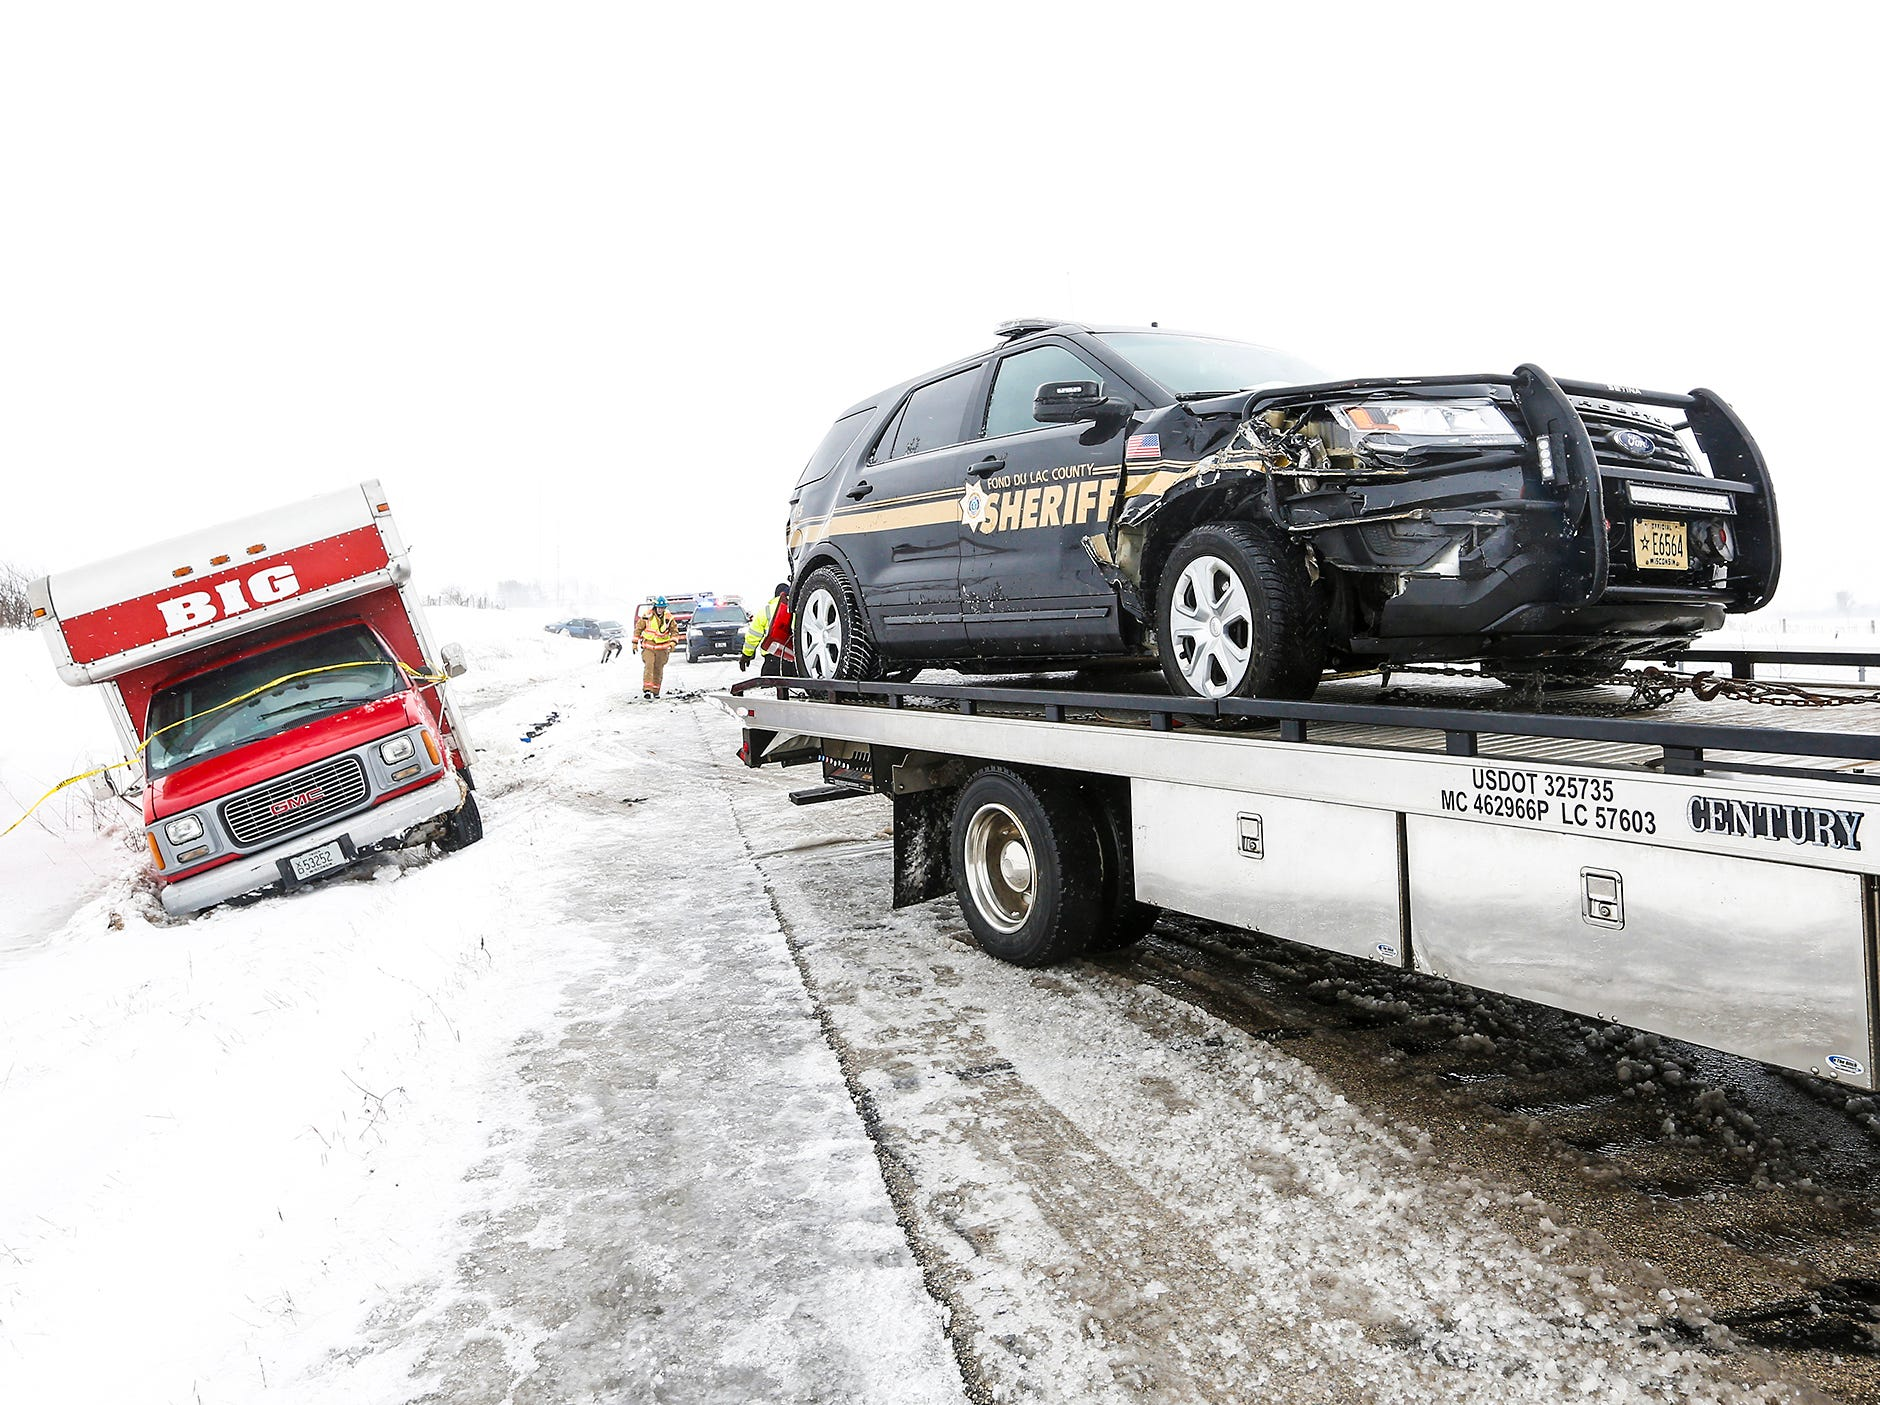 A Fond du Lac County Sheriff's Office squad car sits on a tow truck after it was involved in a 3 vehicle crash Sunday, February 24, 2019 on I-41 near County Highway F, south of Fond du Lac, Wisconsin. High winds and blowing snow caused near white-out conditions in parts of the state. Doug Raflik/USA TODAY NETWORK-Wisconsin